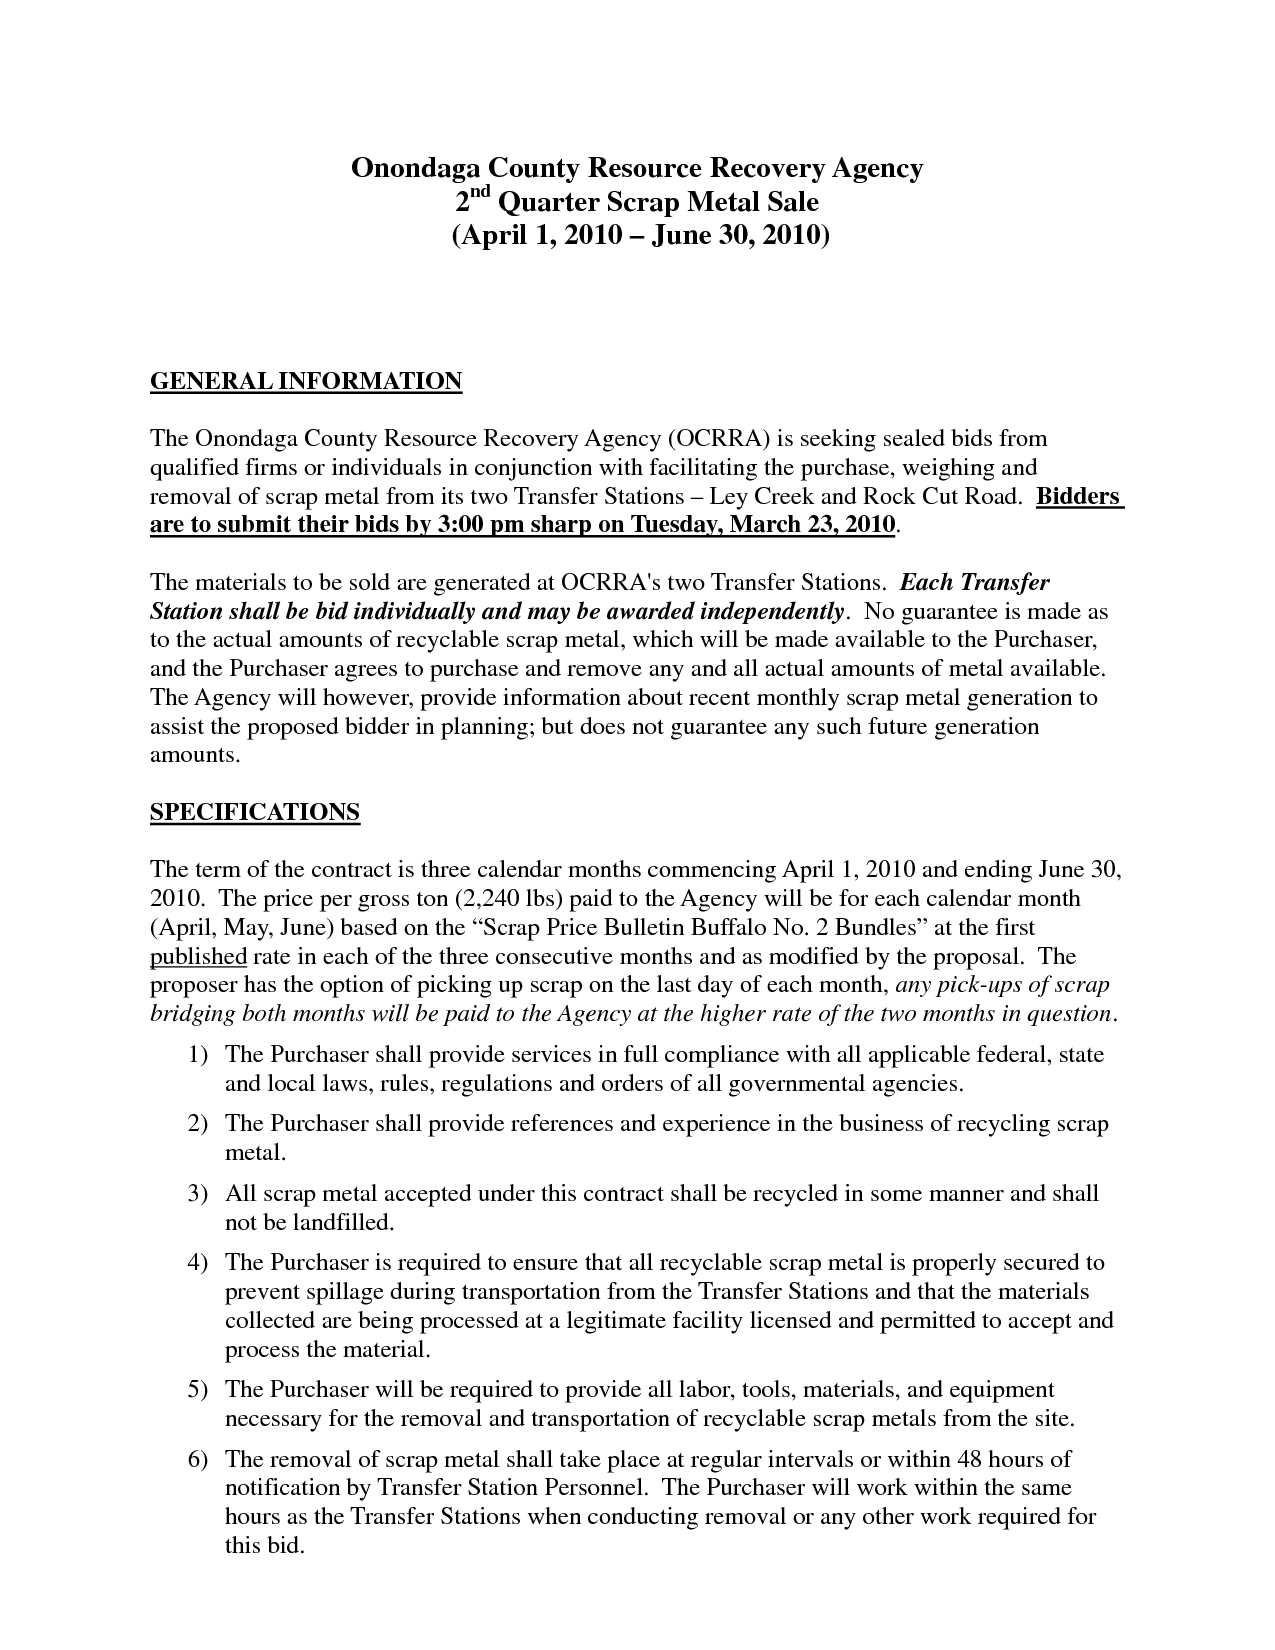 Sealed Bid Offer Letter Template - Mortgage assumption Agreement form Luxury Loan Fer Letter Template